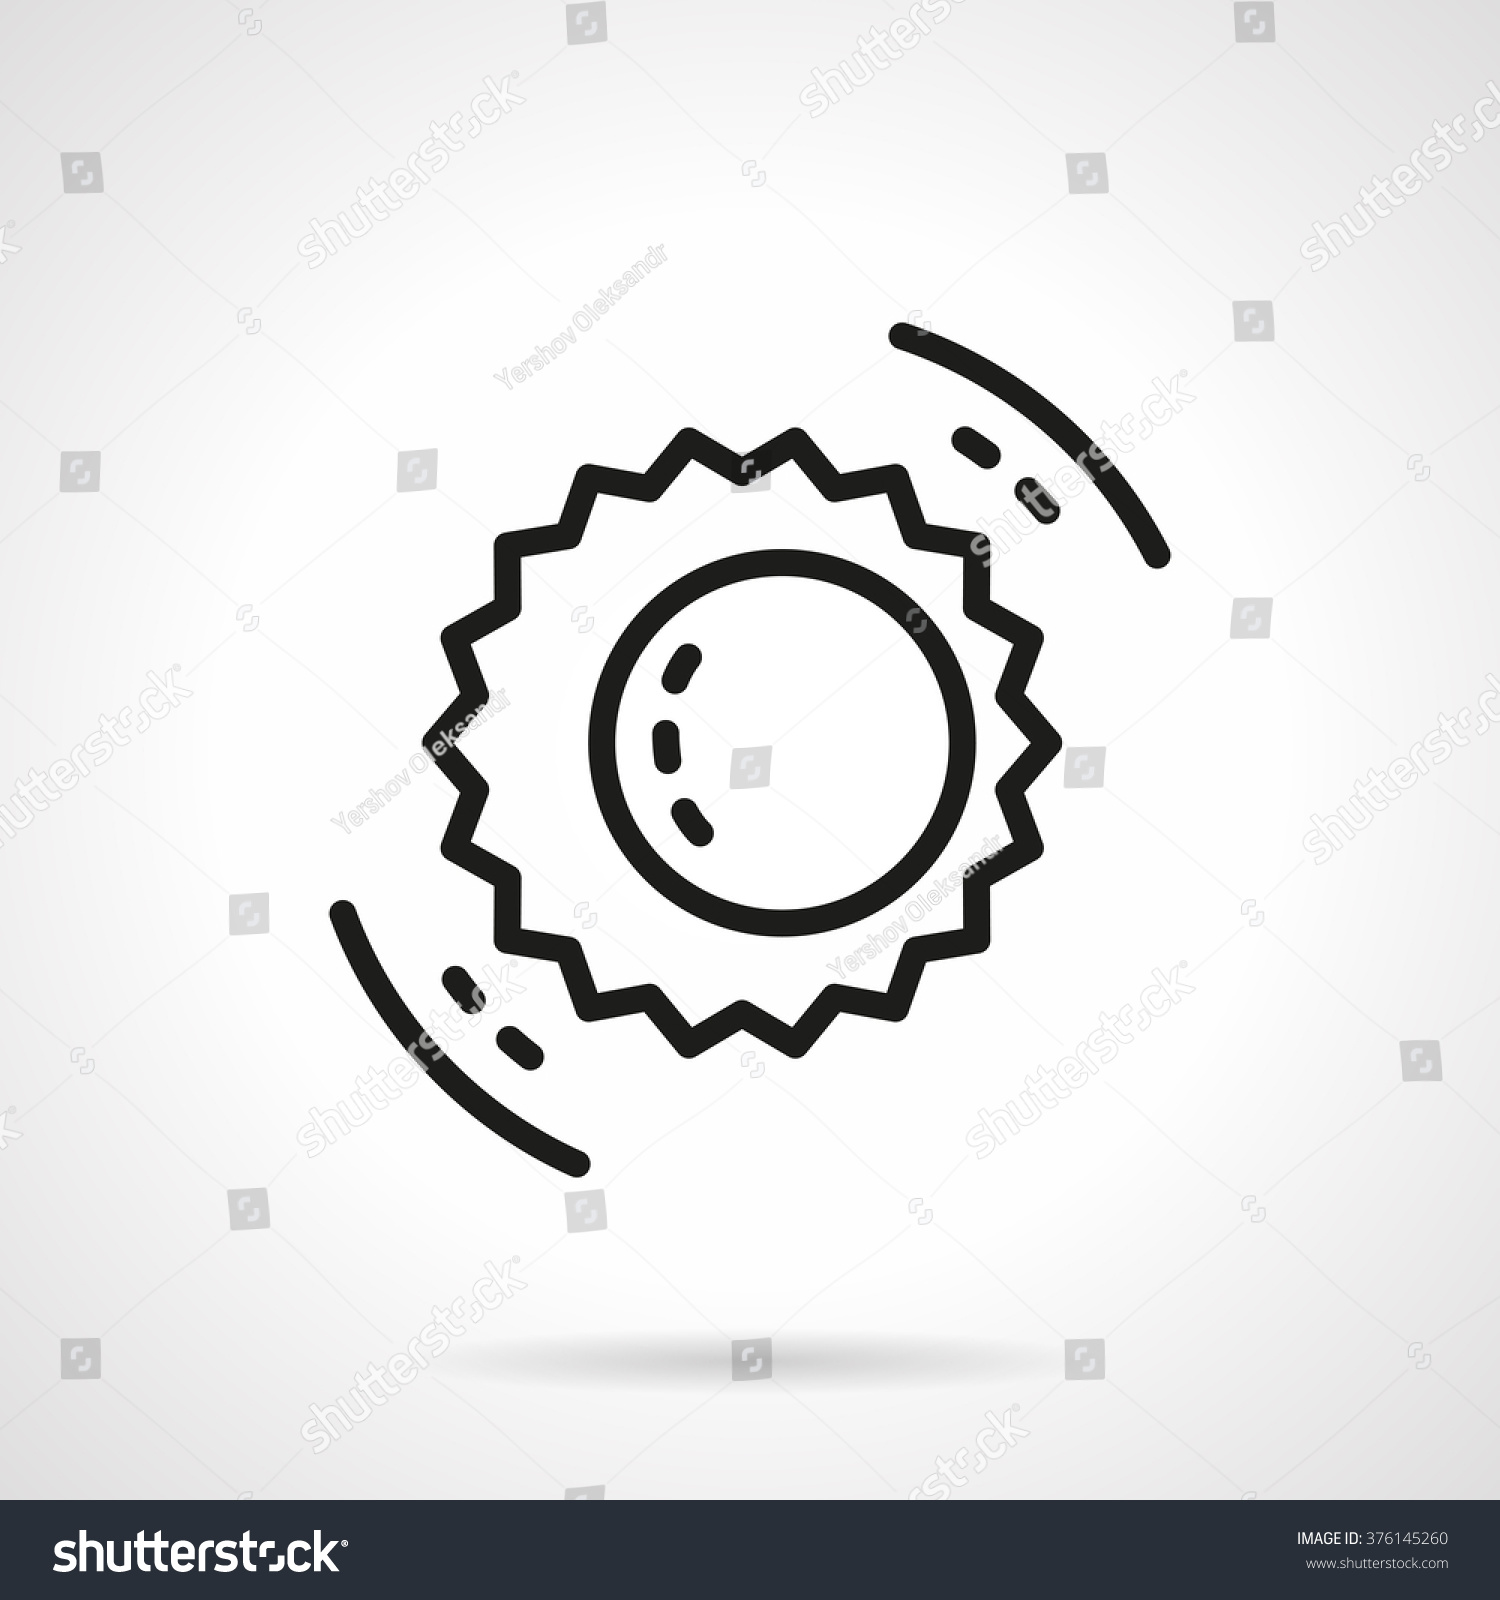 Sun moon symbol solar eclipse astronomy stock vector 376145260 sun and moon symbol solar eclipse astronomy events space research concept education biocorpaavc Images